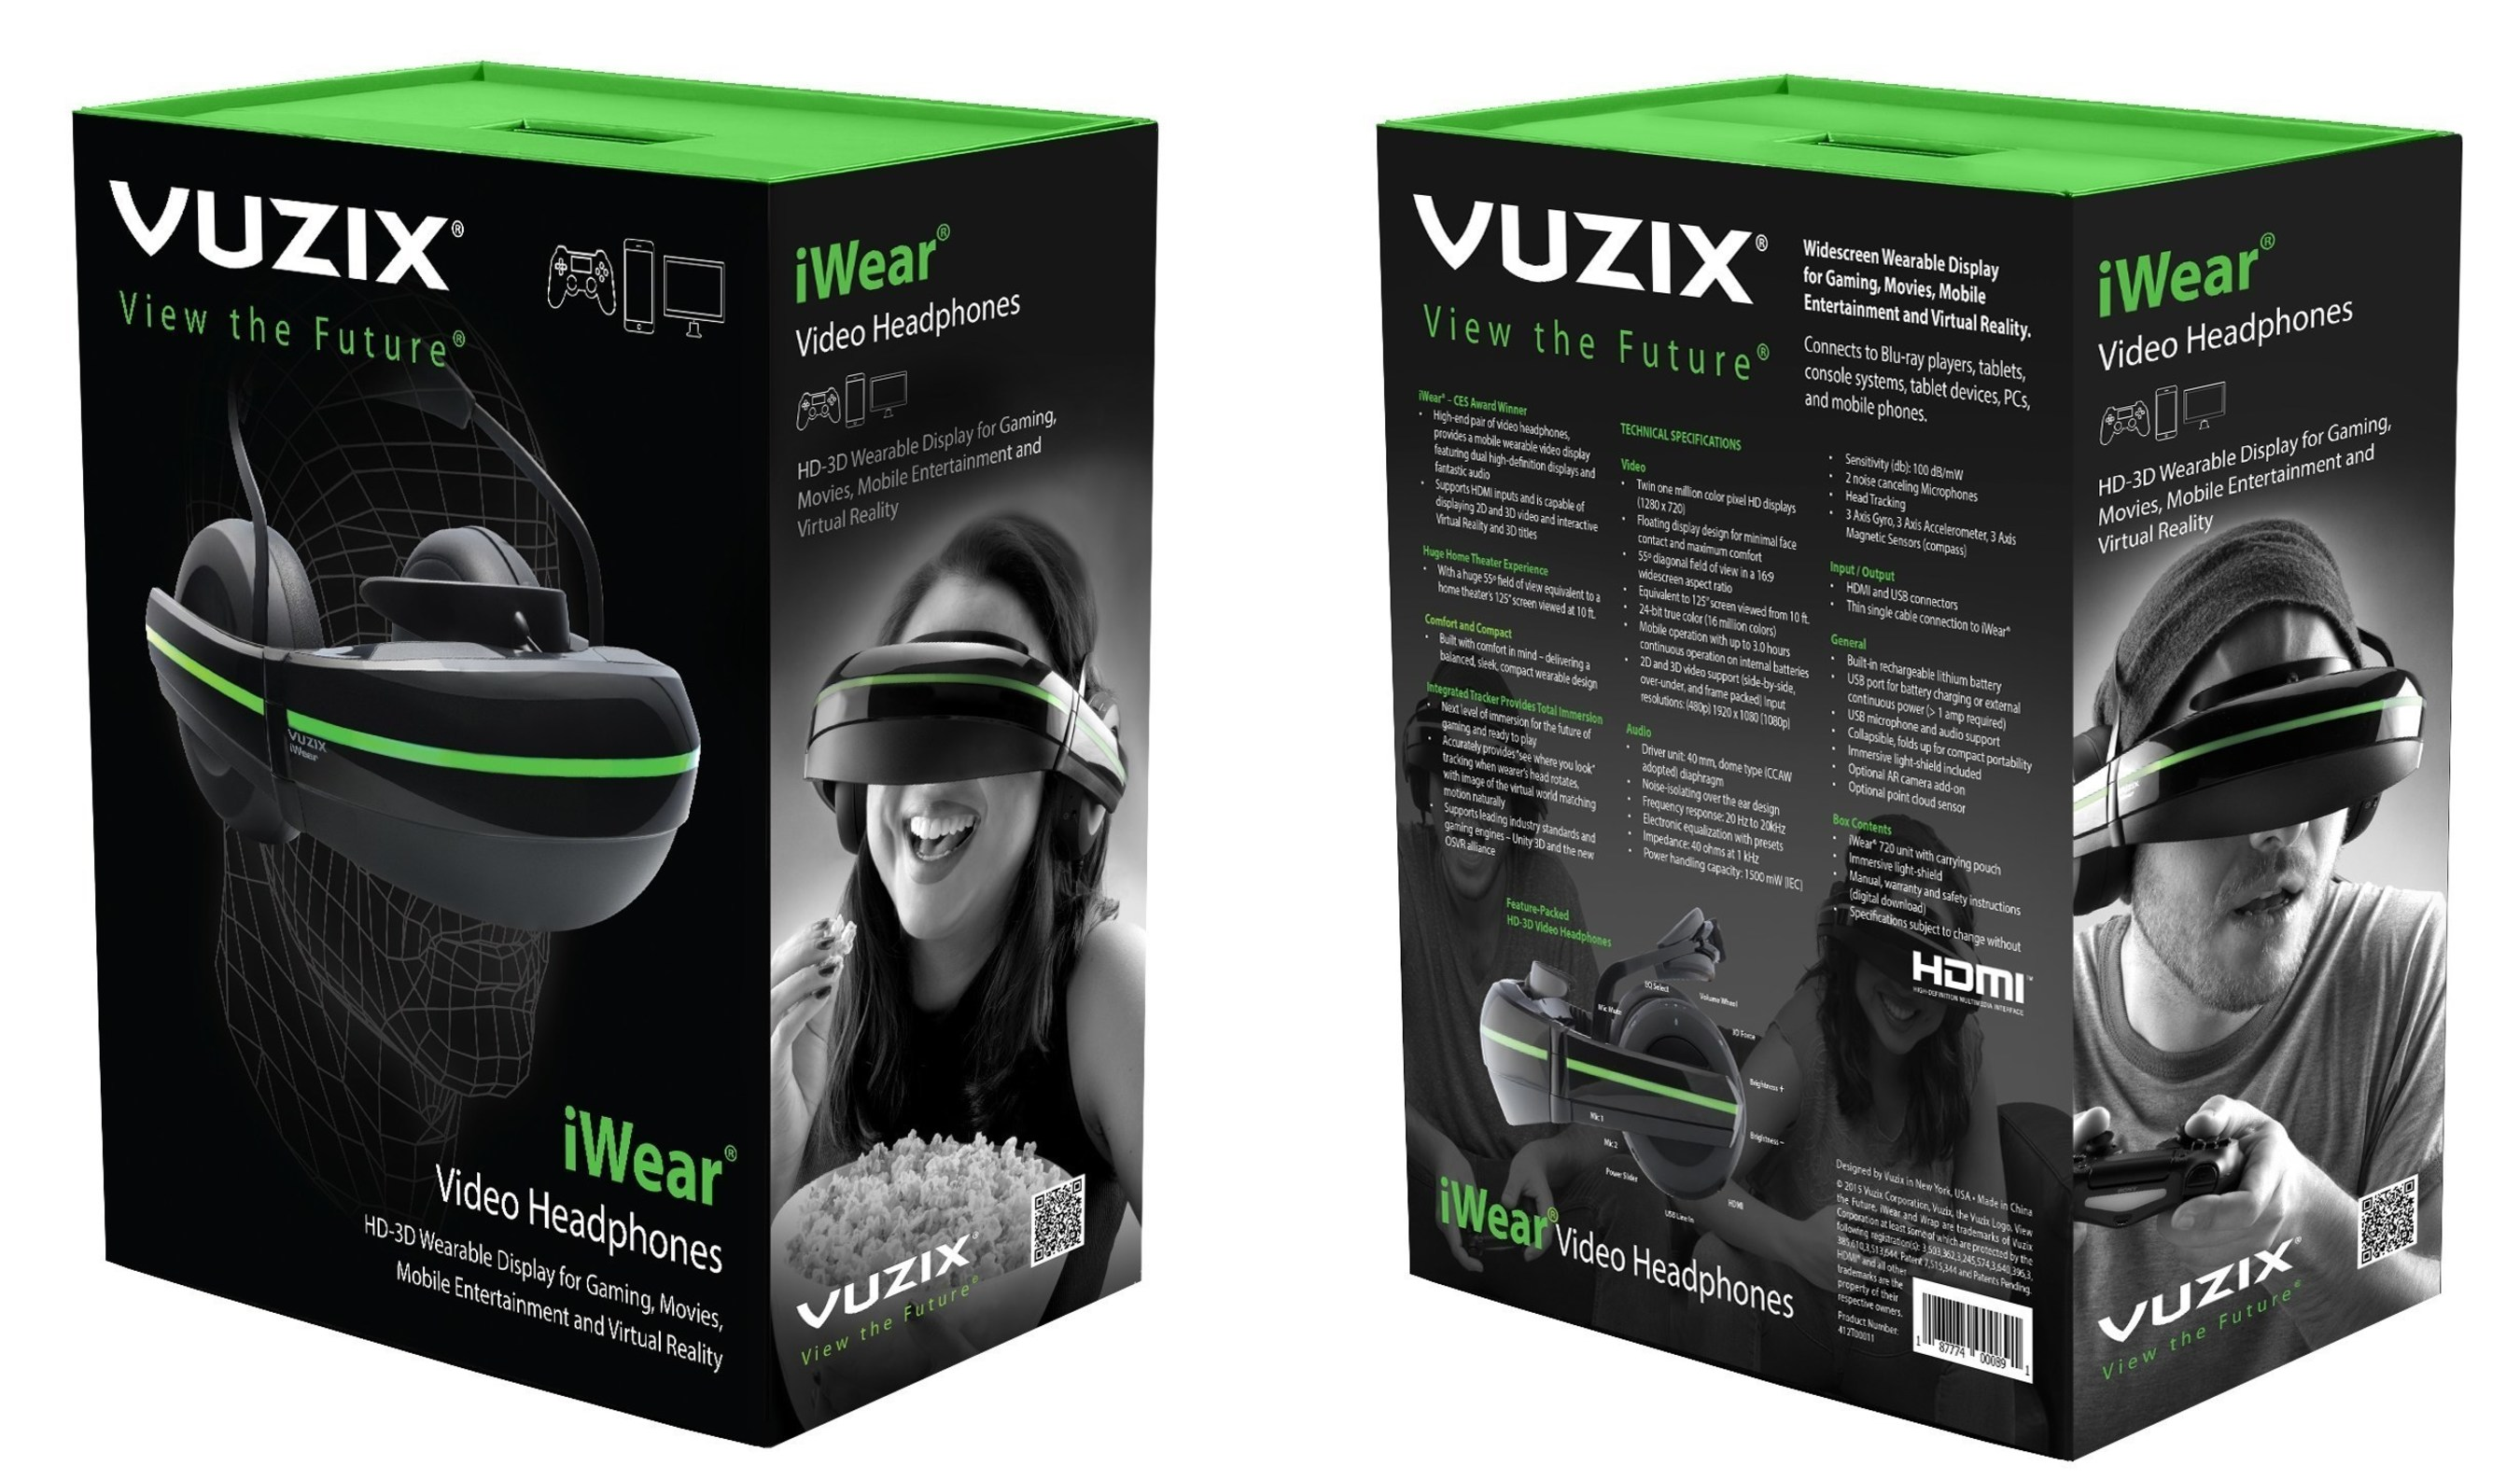 Vuzix Commences First Production Shipments of iWear Video Headphones to Developers